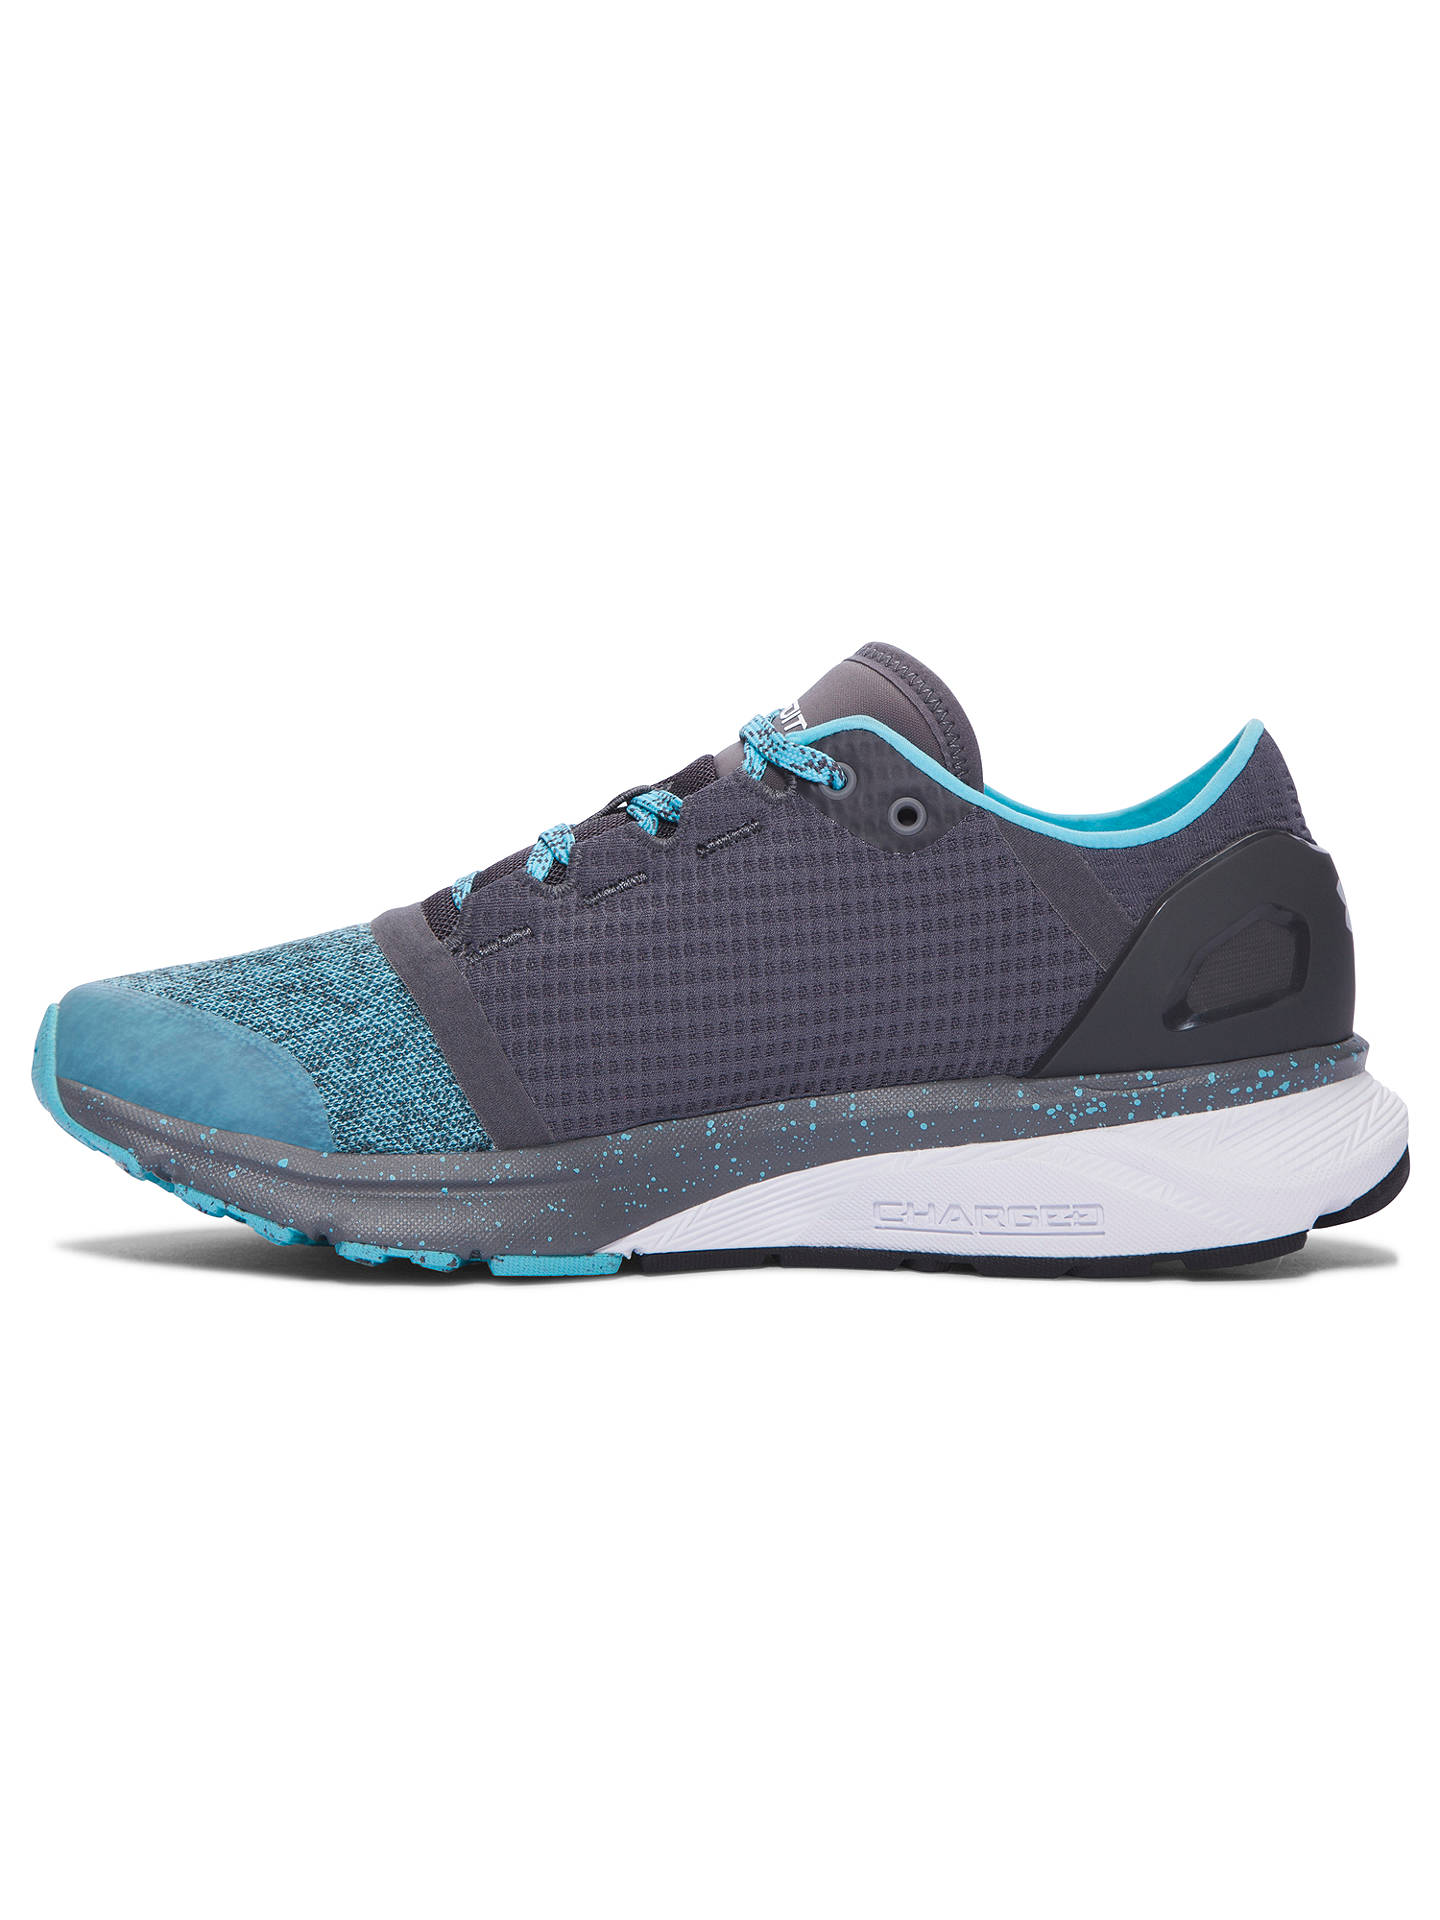 best sneakers 3b412 97e37 Under Armour Charged Bandit 2 Women's Running Shoes, Blue at ...